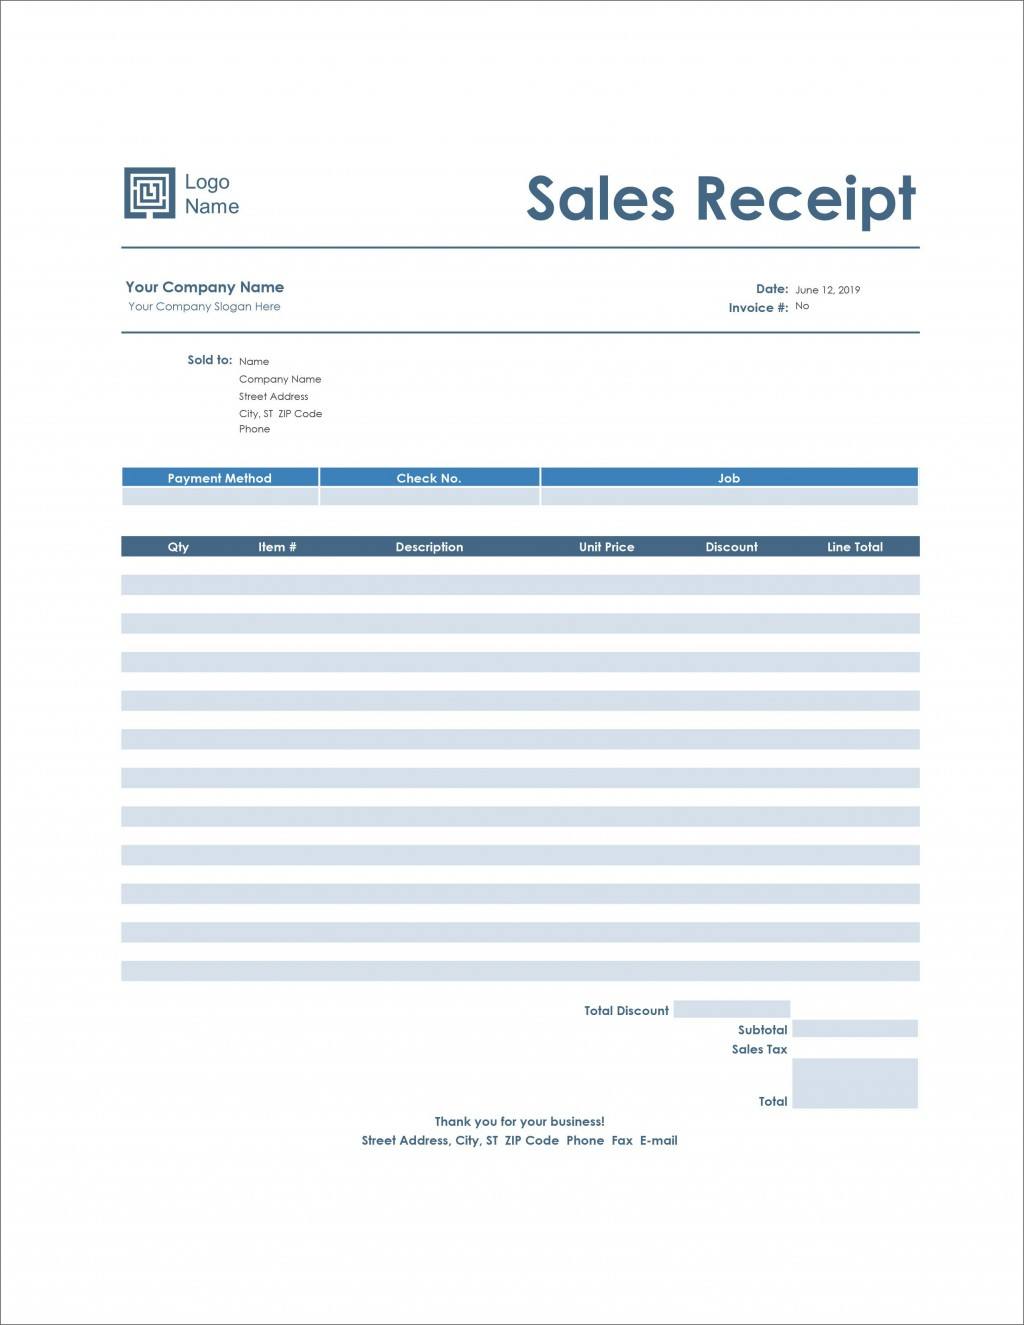 006 Staggering Receipt Template Microsoft Word Design  Payment Sample InvoiceLarge